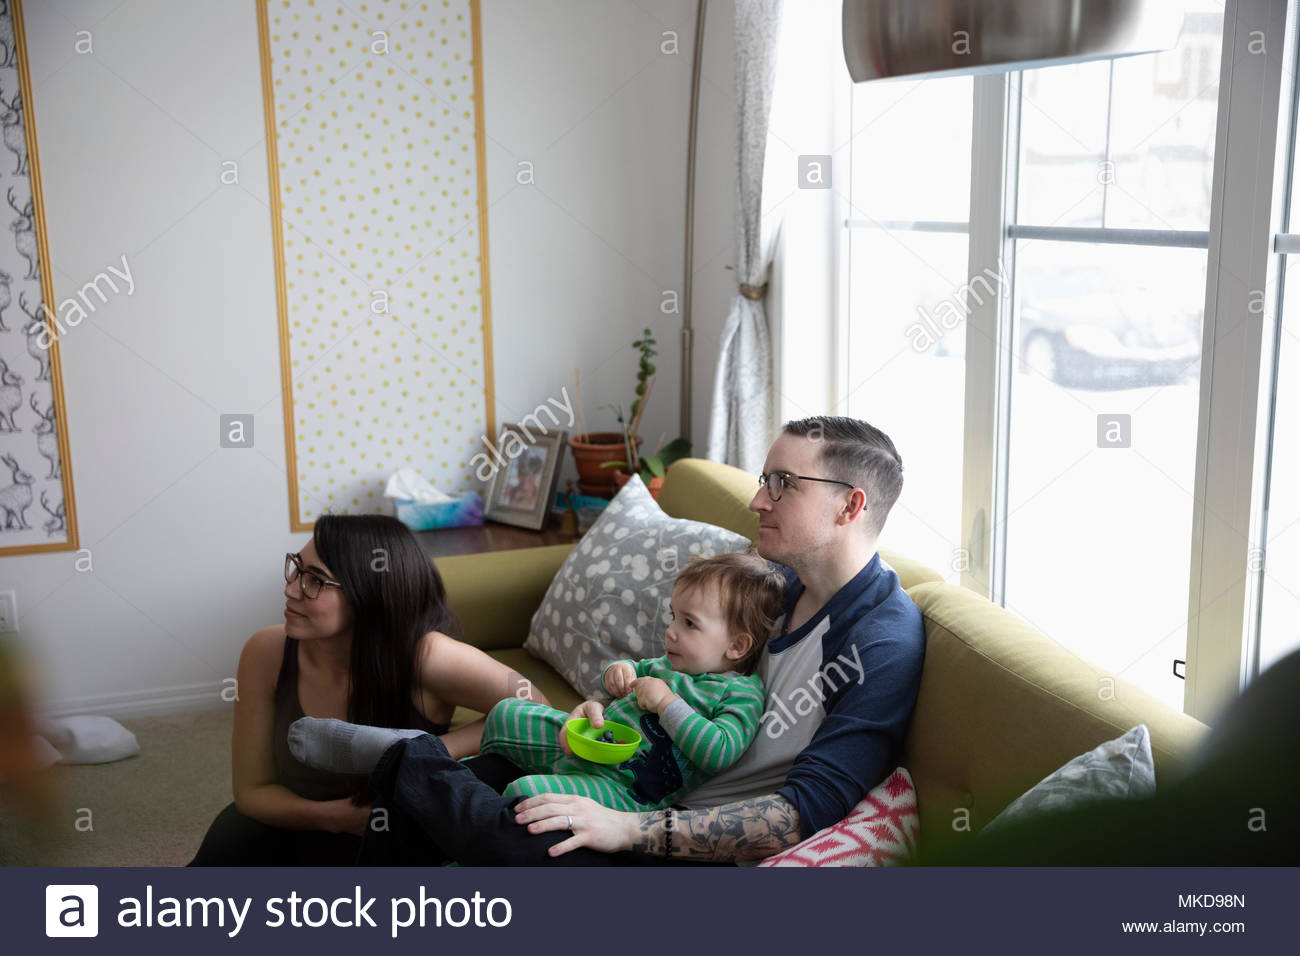 Young family eating, watching TV on living room sofa - Stock Image